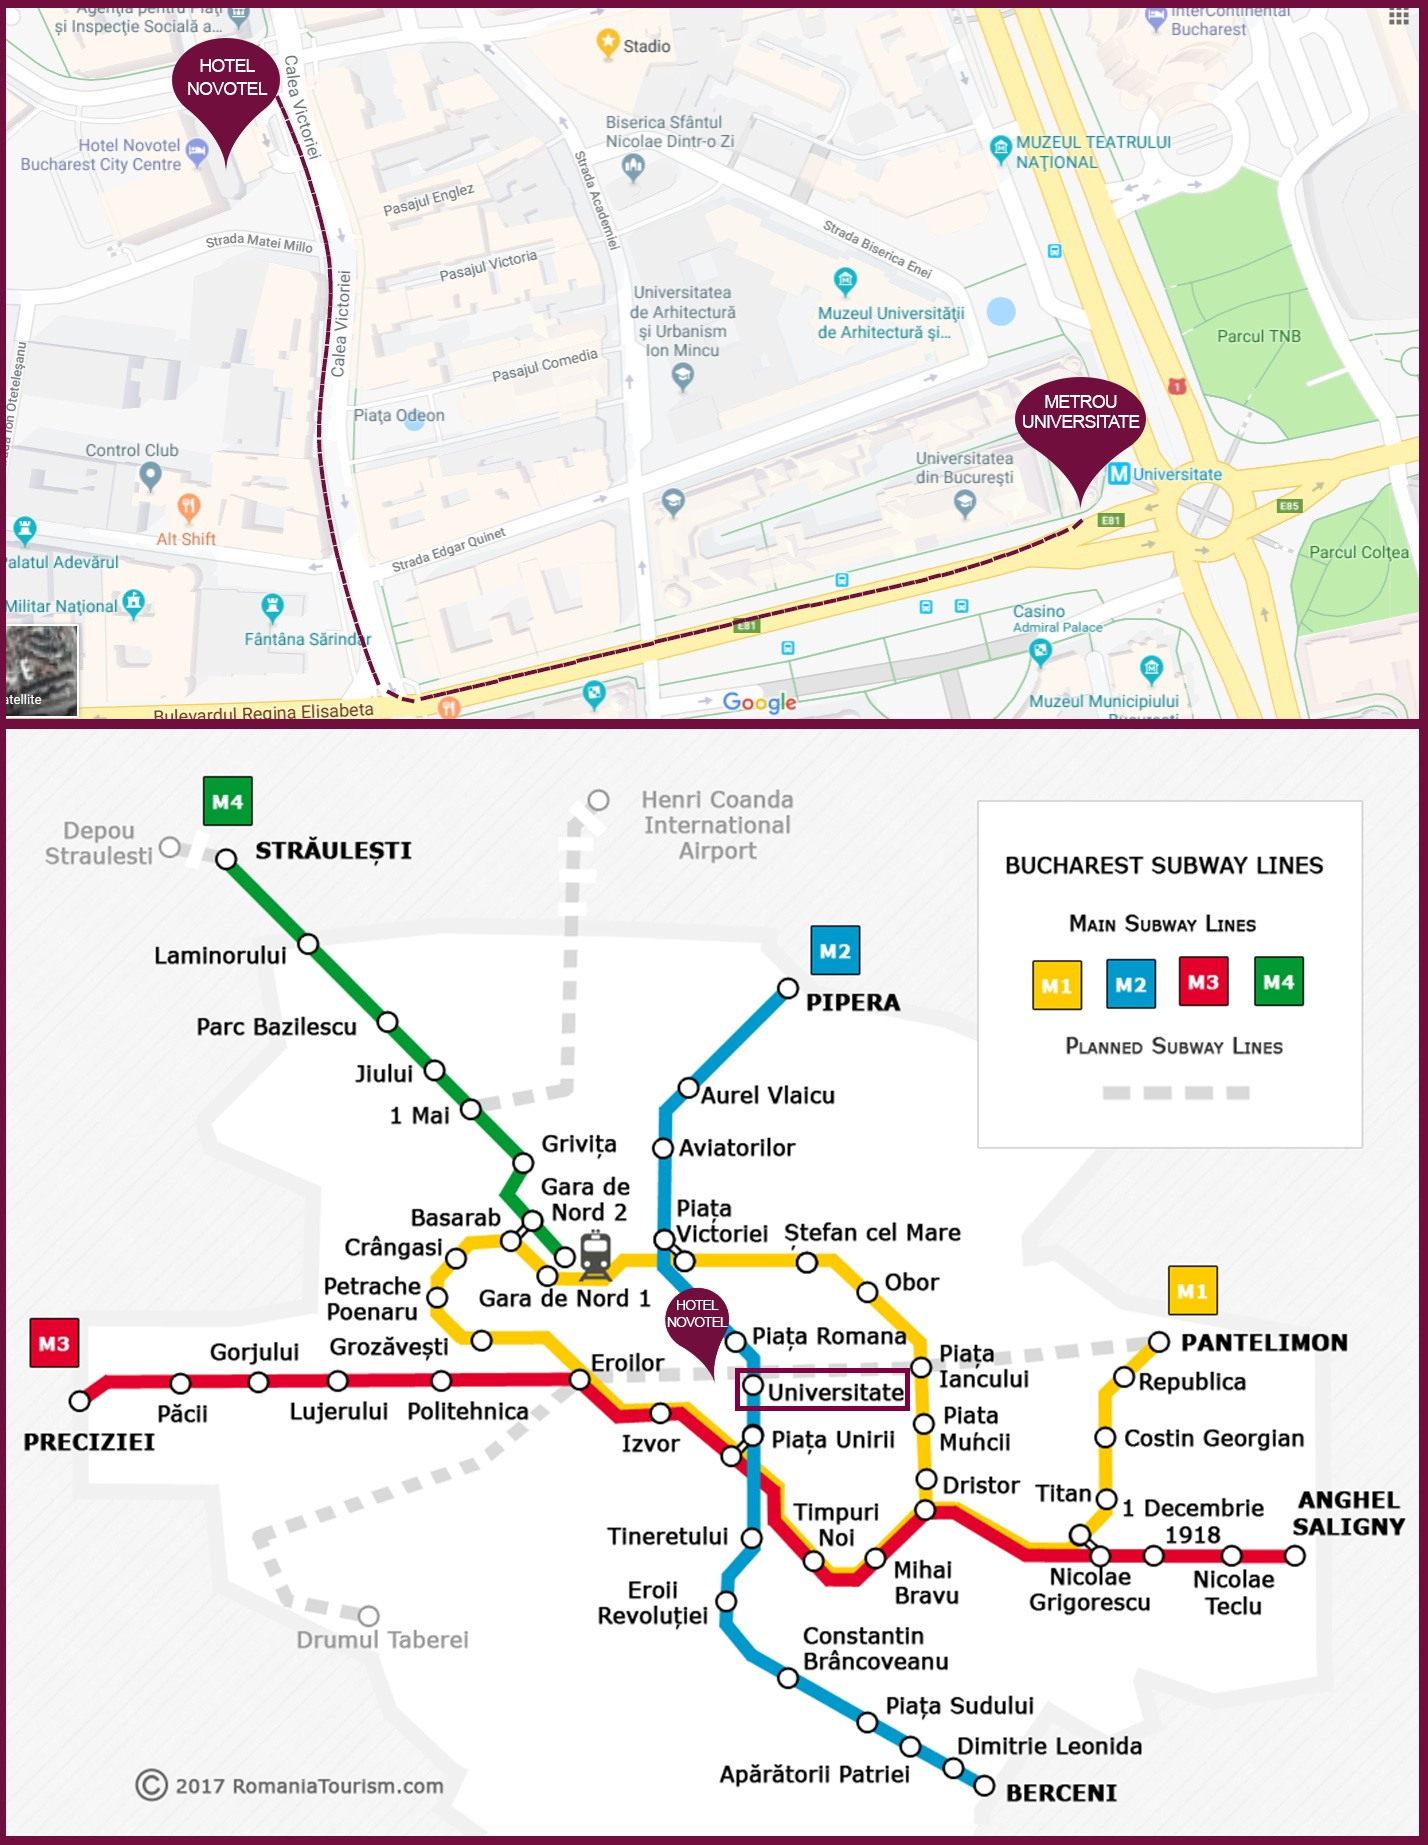 metro map 2019 novotel revino